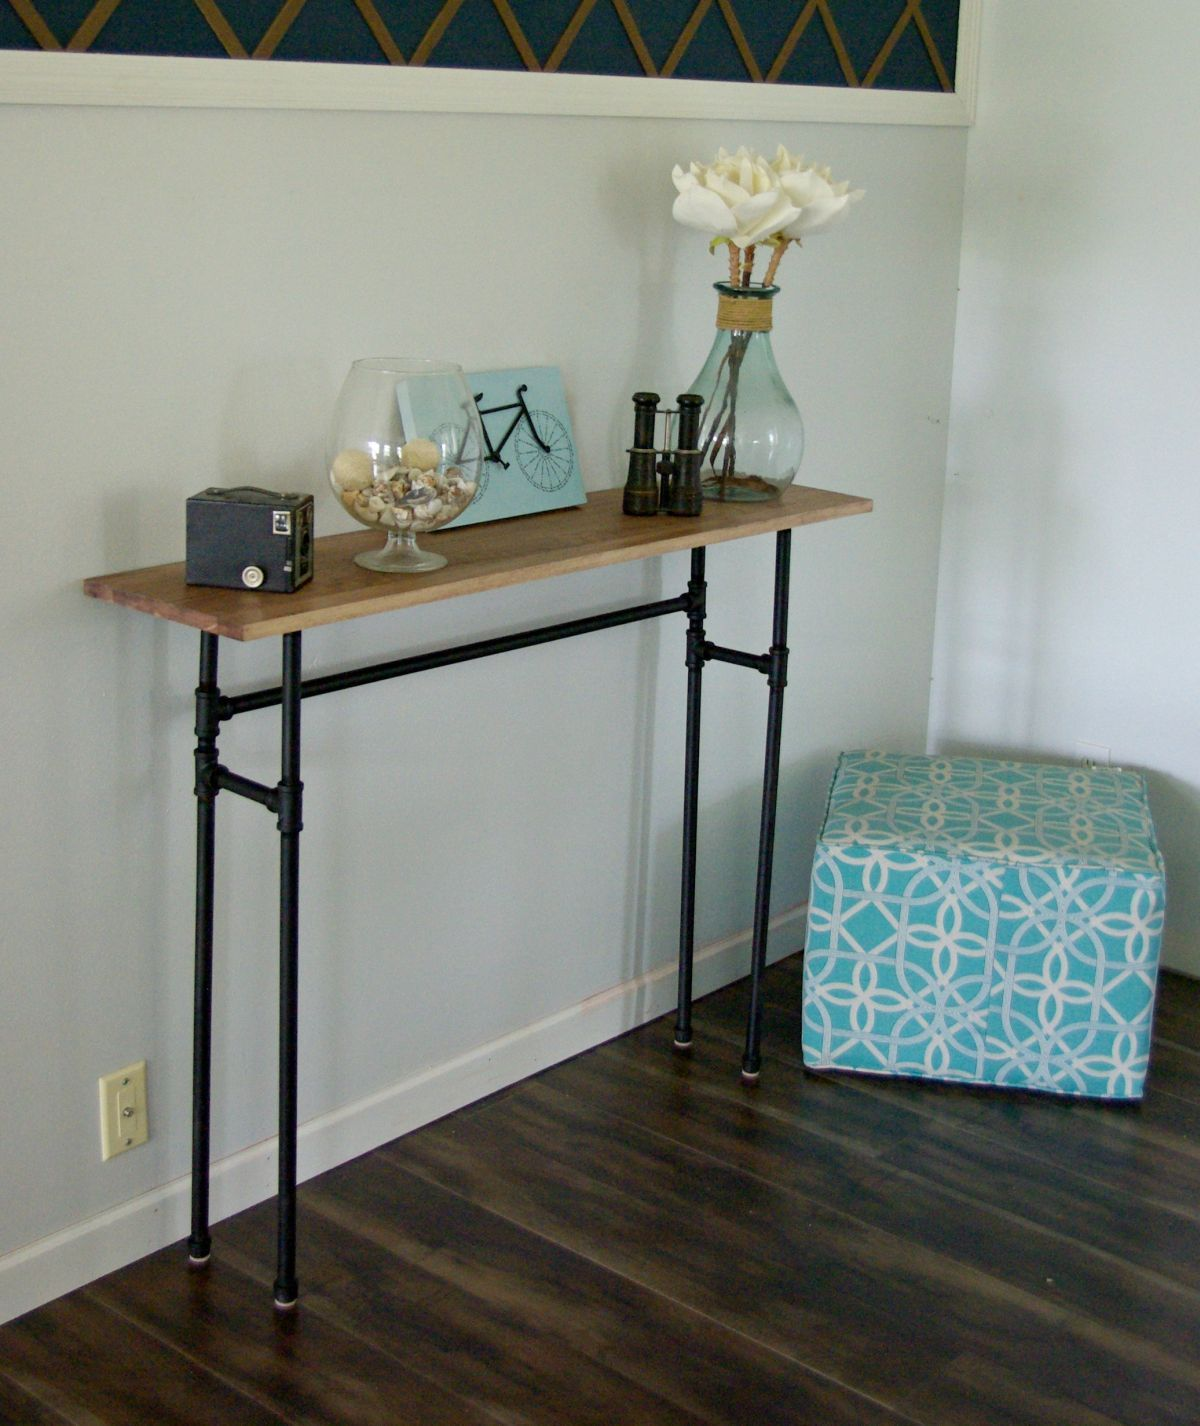 Table Console à Rallonge: How To Build A Rustic Table Using Galvanized Pipes